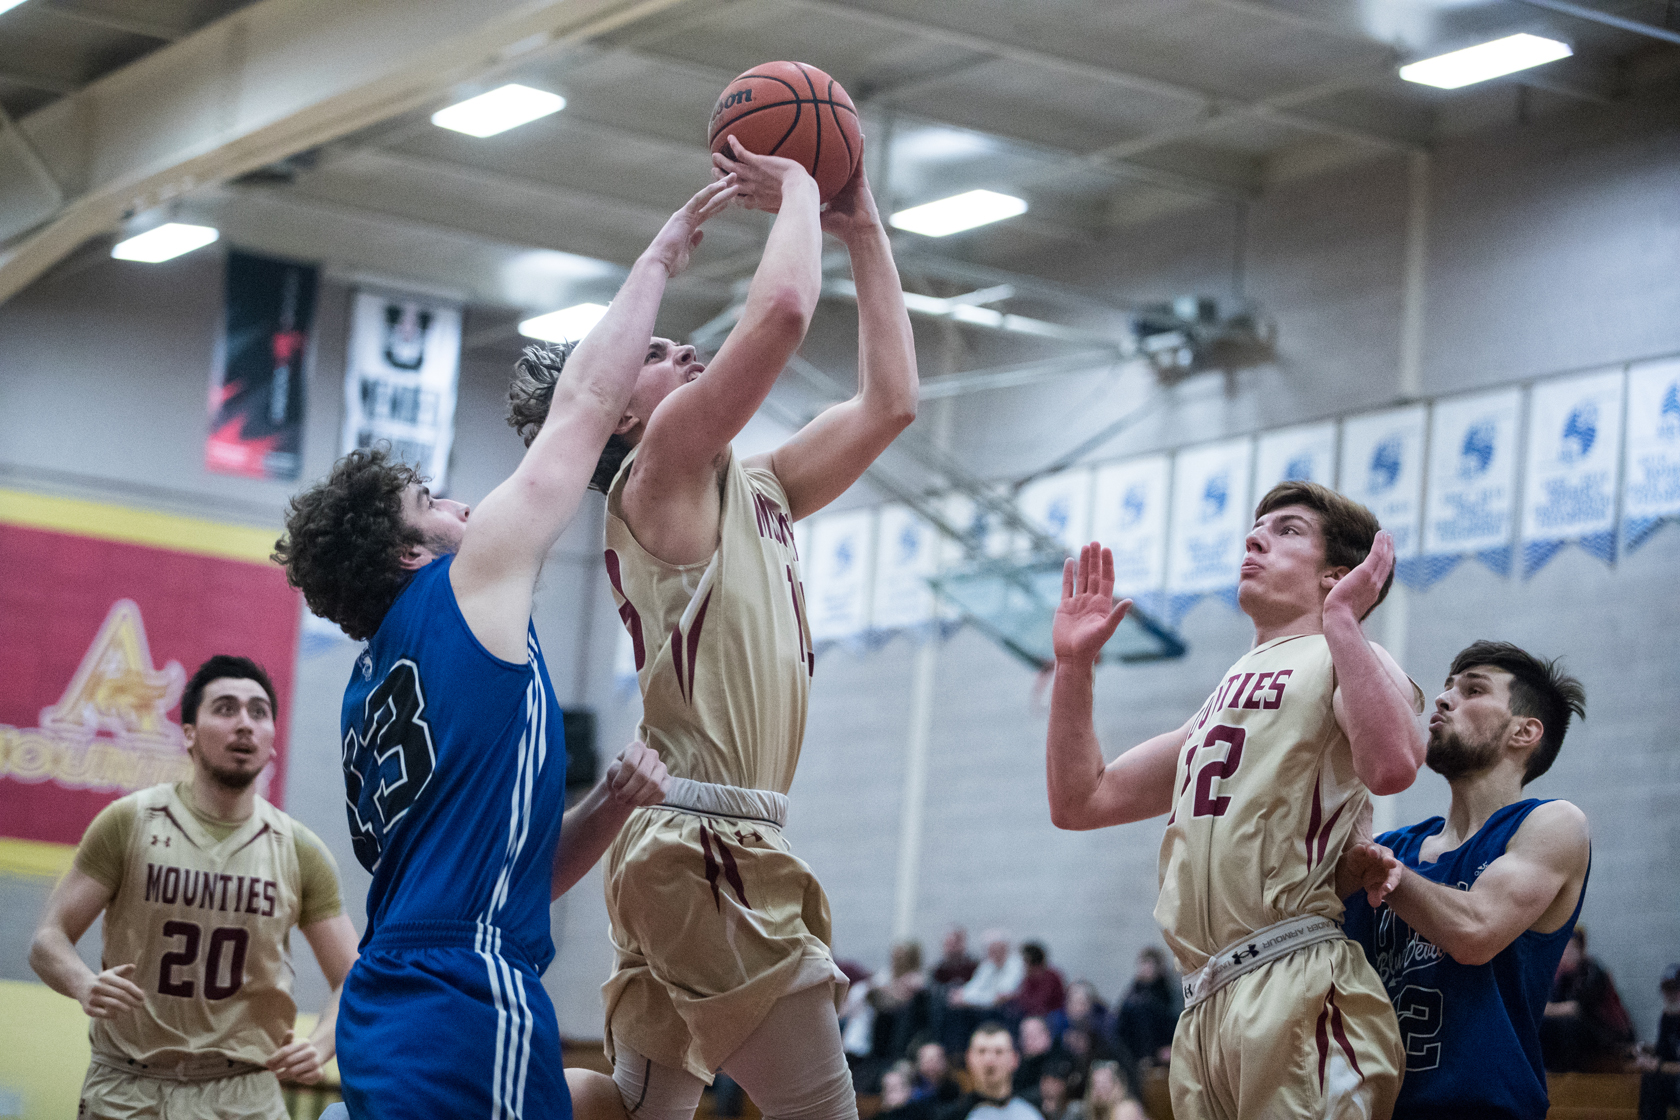 Blue Devils routed by Mounties